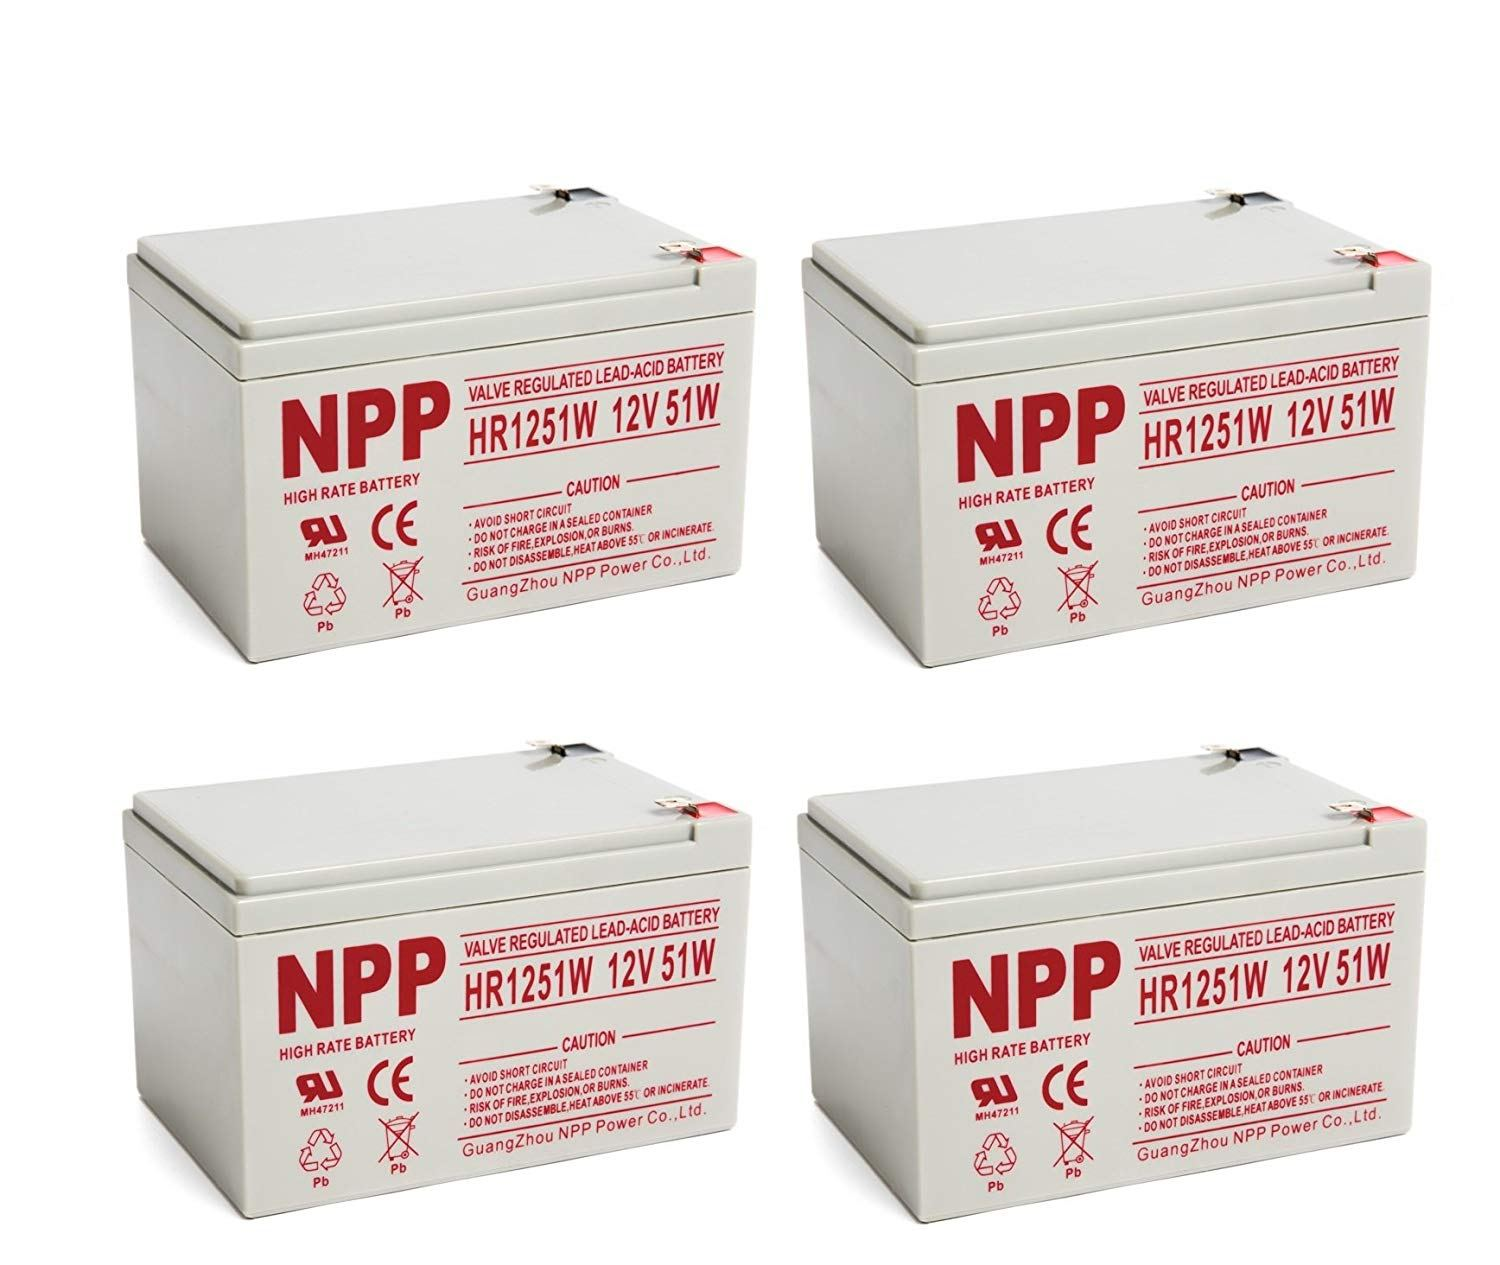 NPP HR1251W FR 12V 51W(15min.Rate) Sealed Lead Acid UPS 12V 14Ah Battery with F2 Style Terminals / (4pcs)